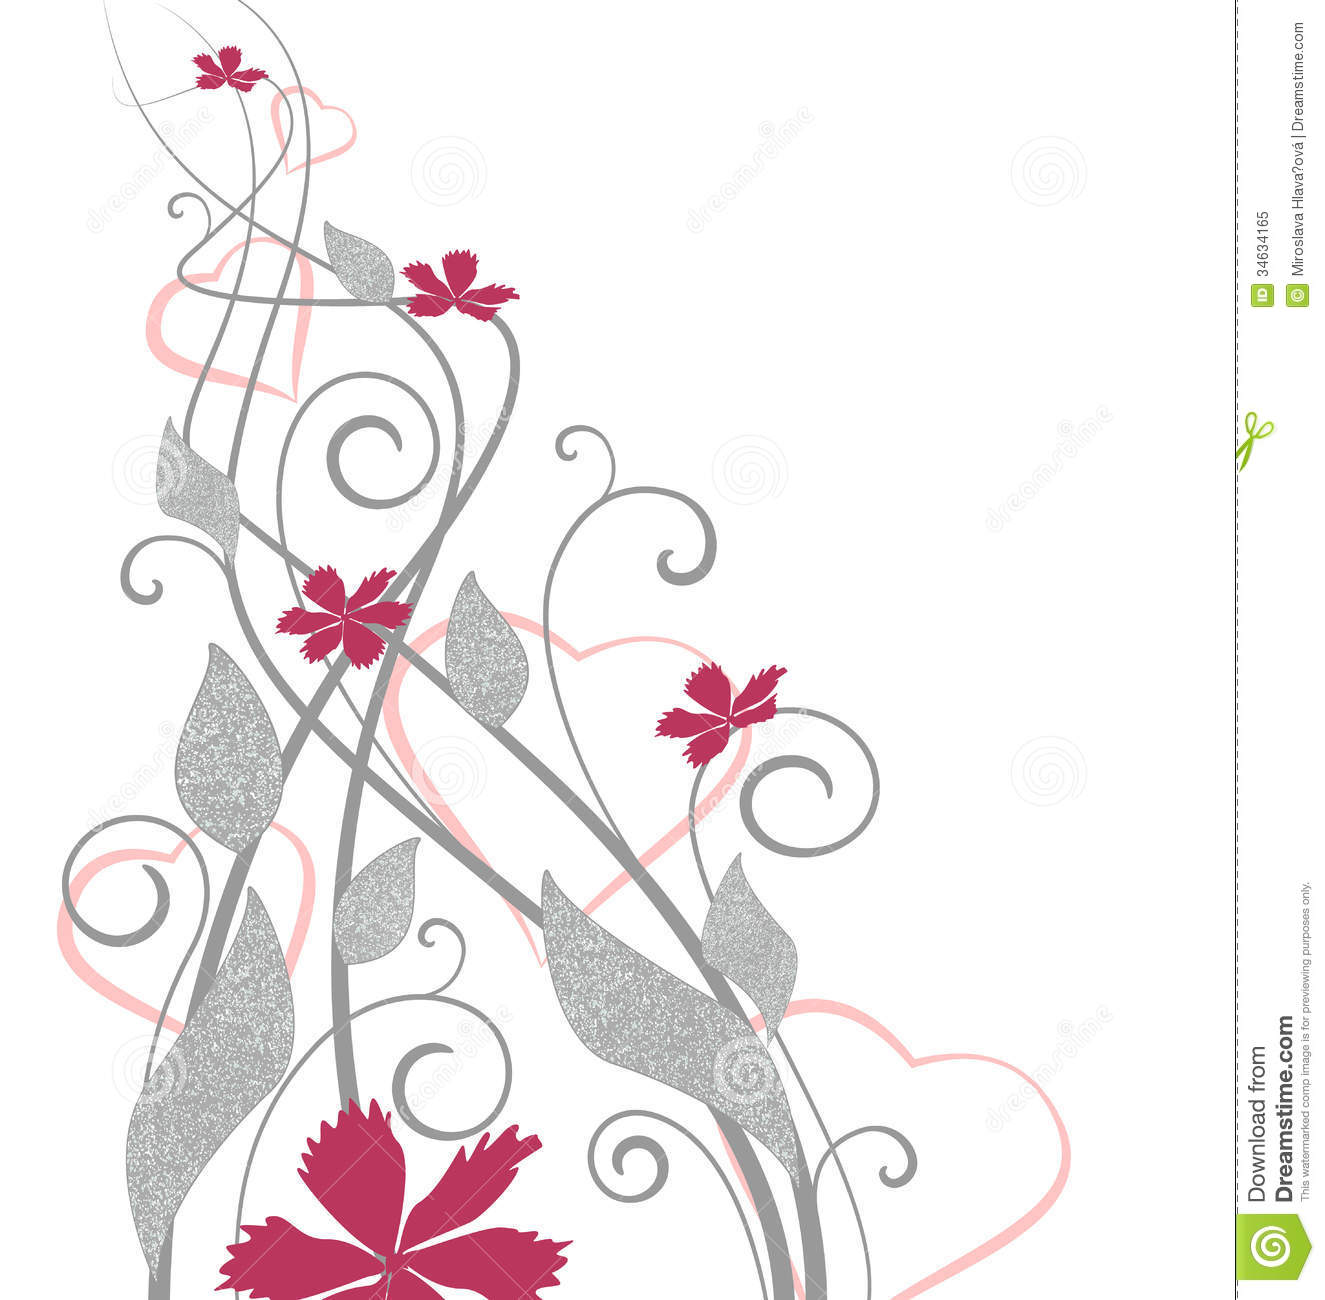 Floral Decoration floral decoration royalty free stock photo - image: 34634165